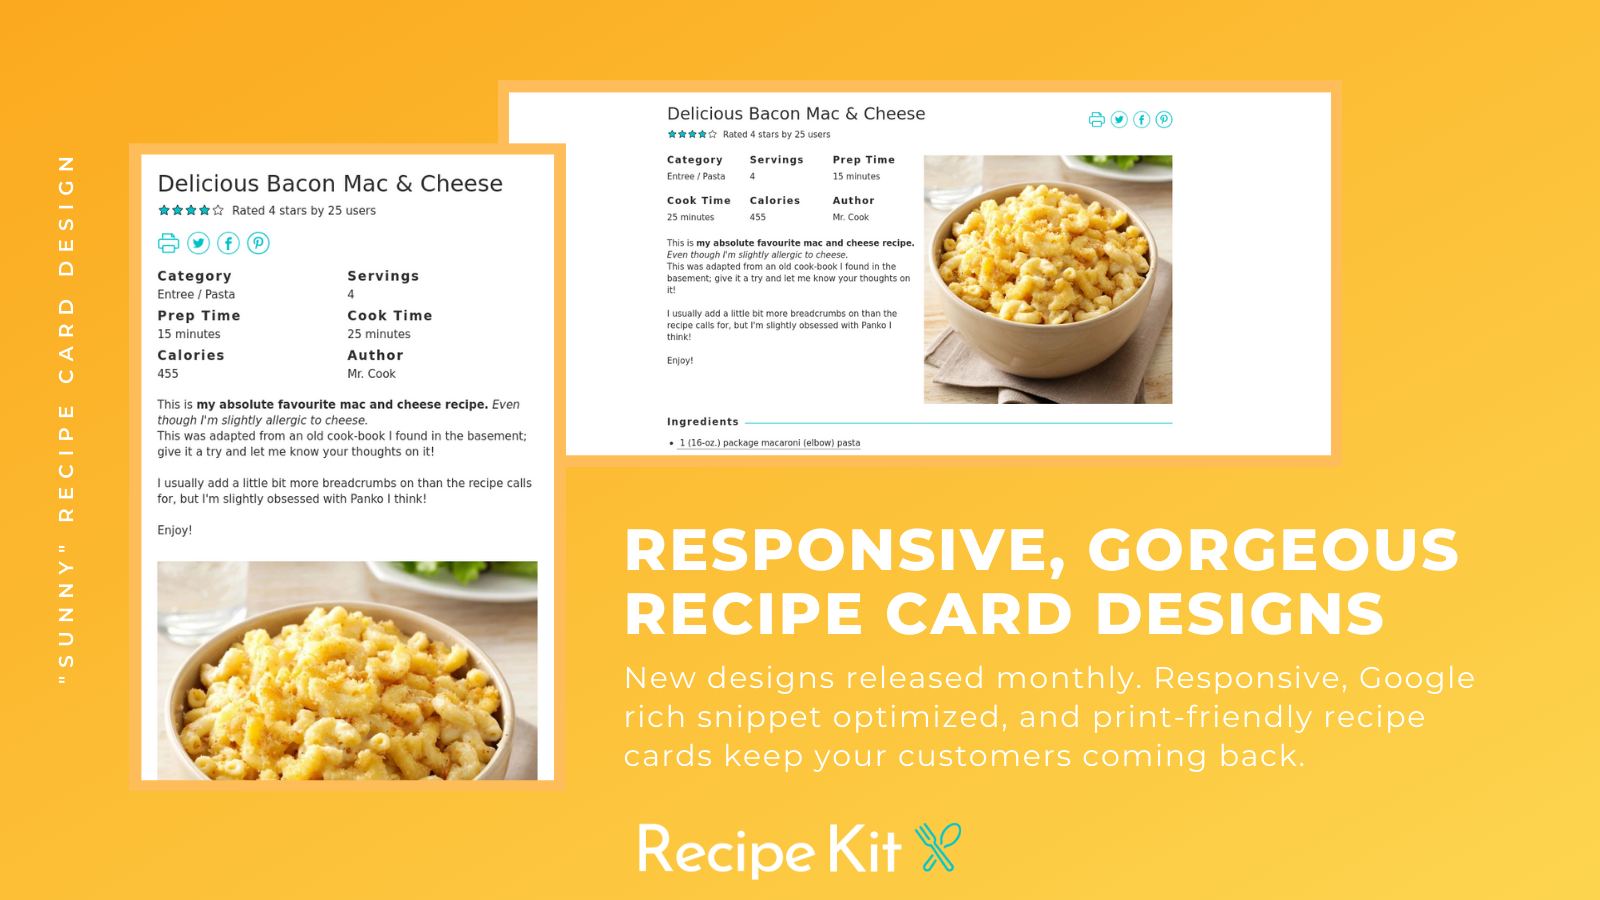 New recipe designs are added monthly! Gorgeous & responsive.